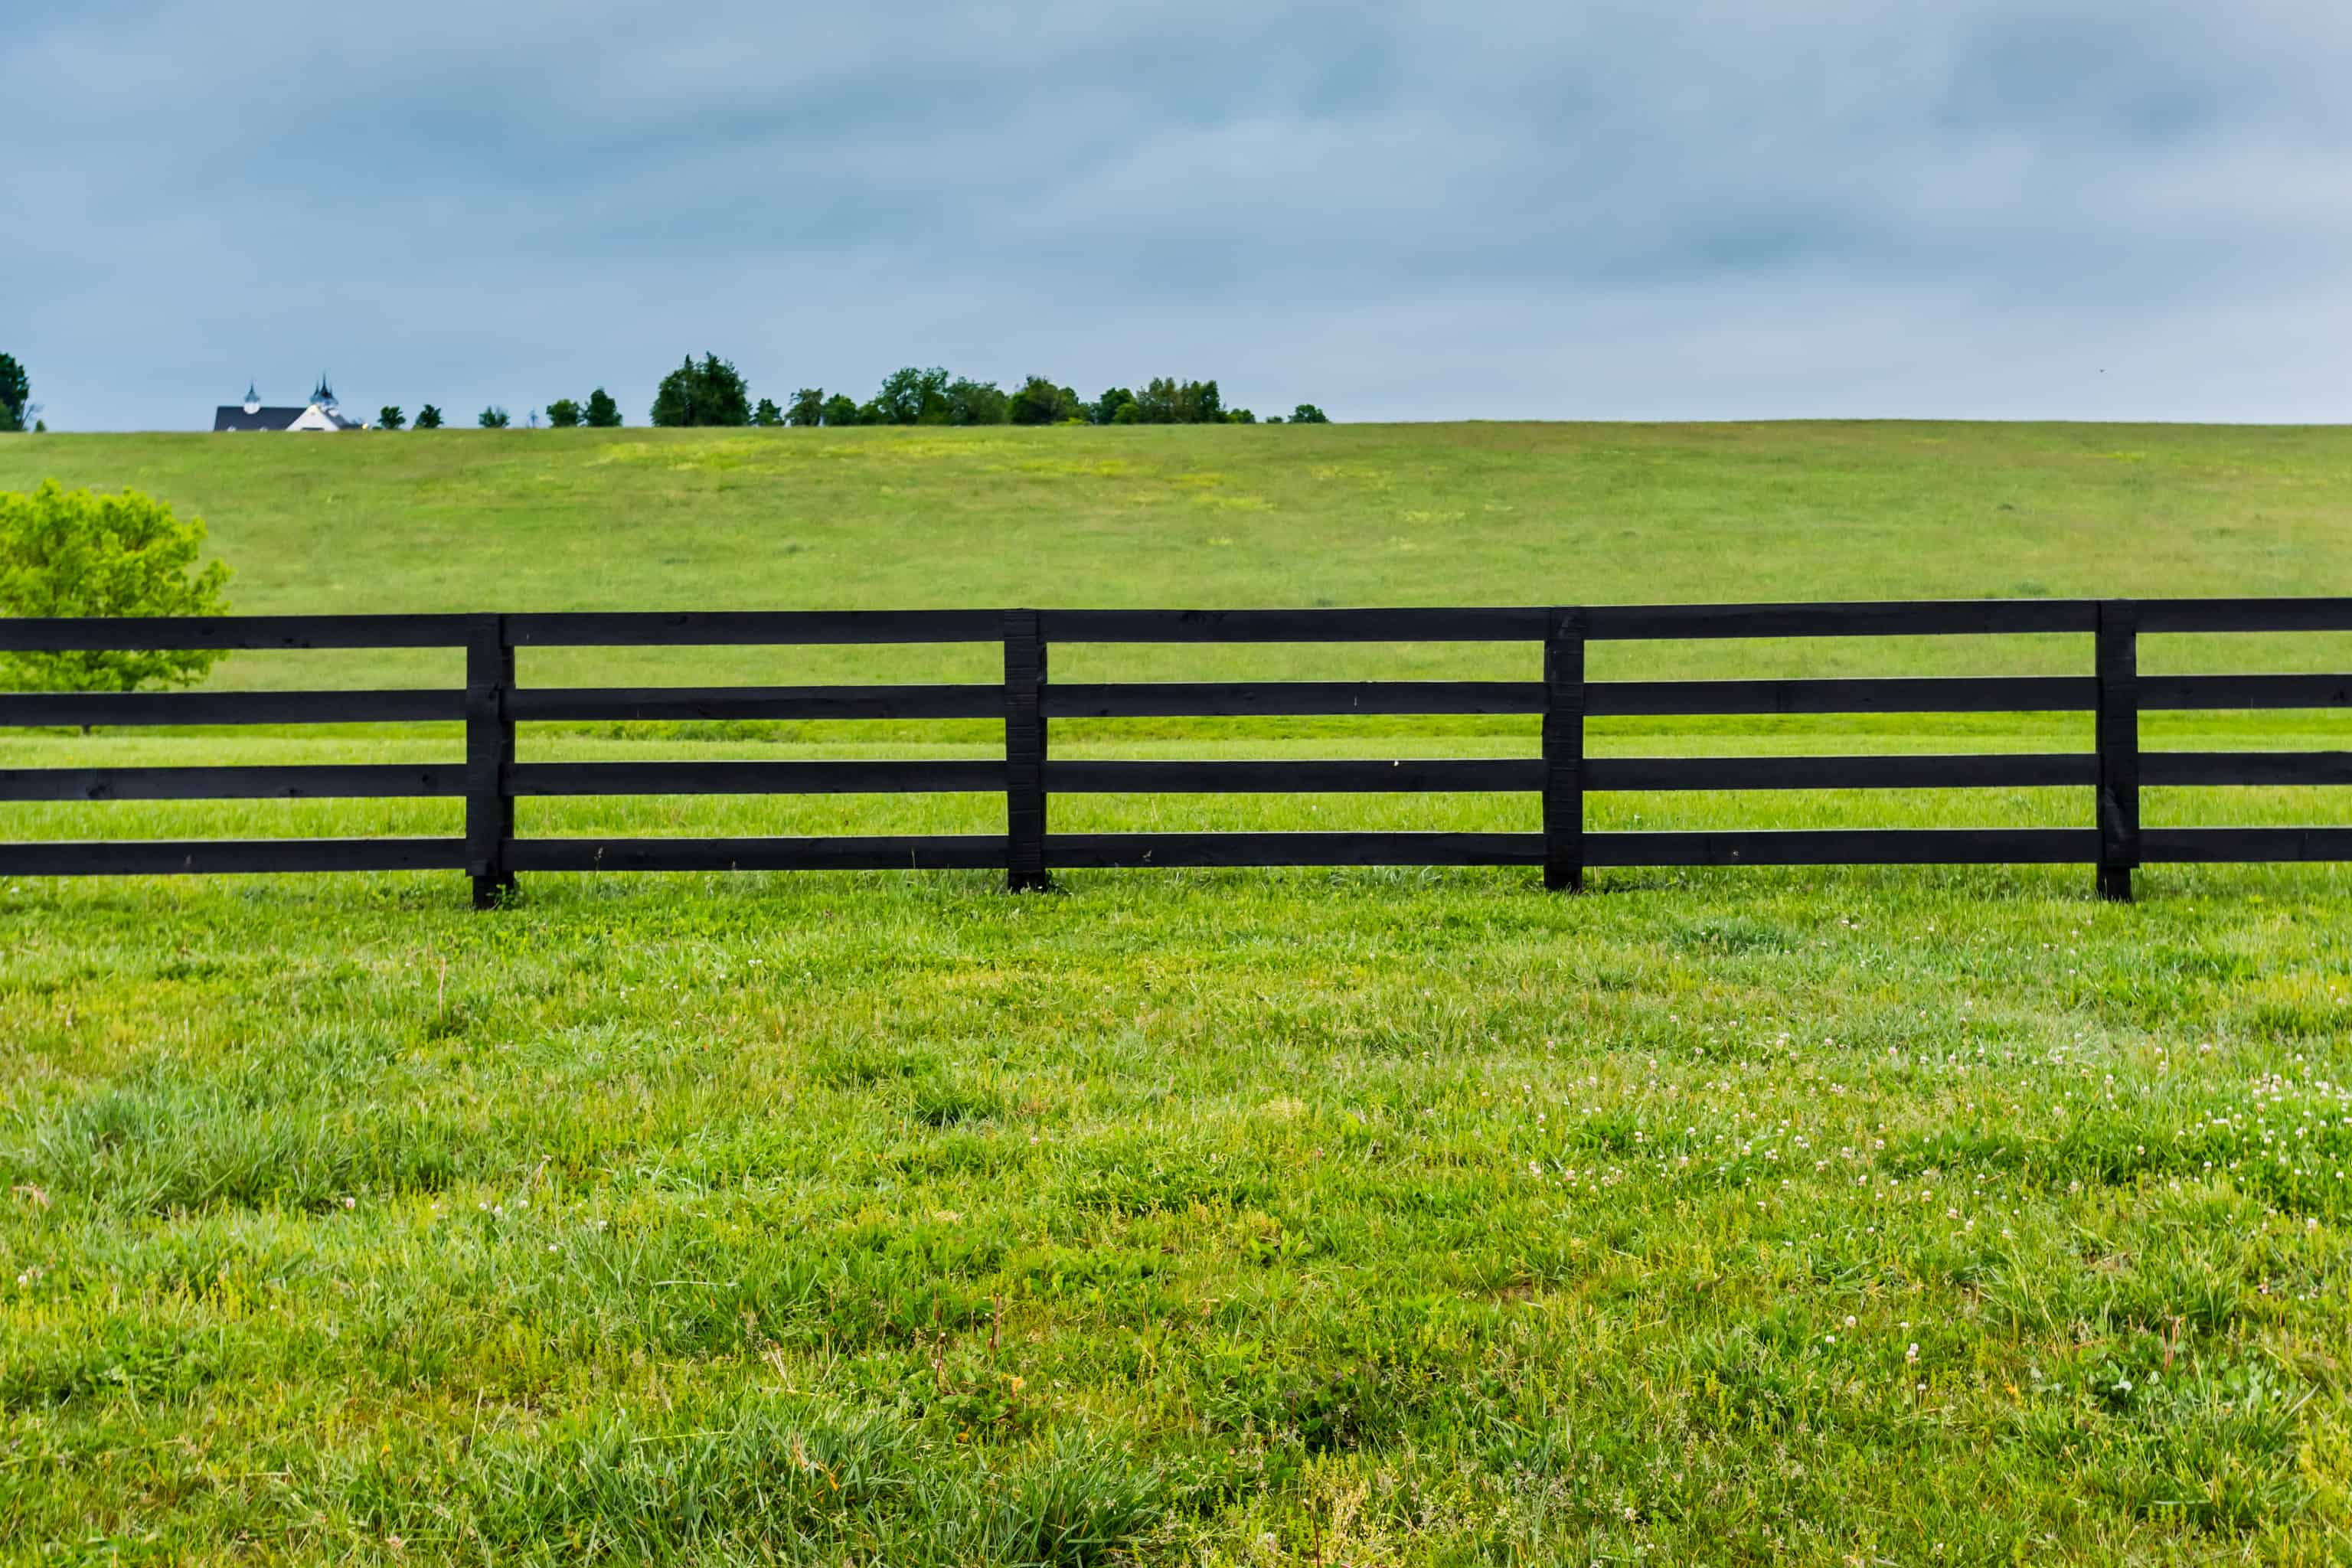 Section of Farm Fence and Pasture